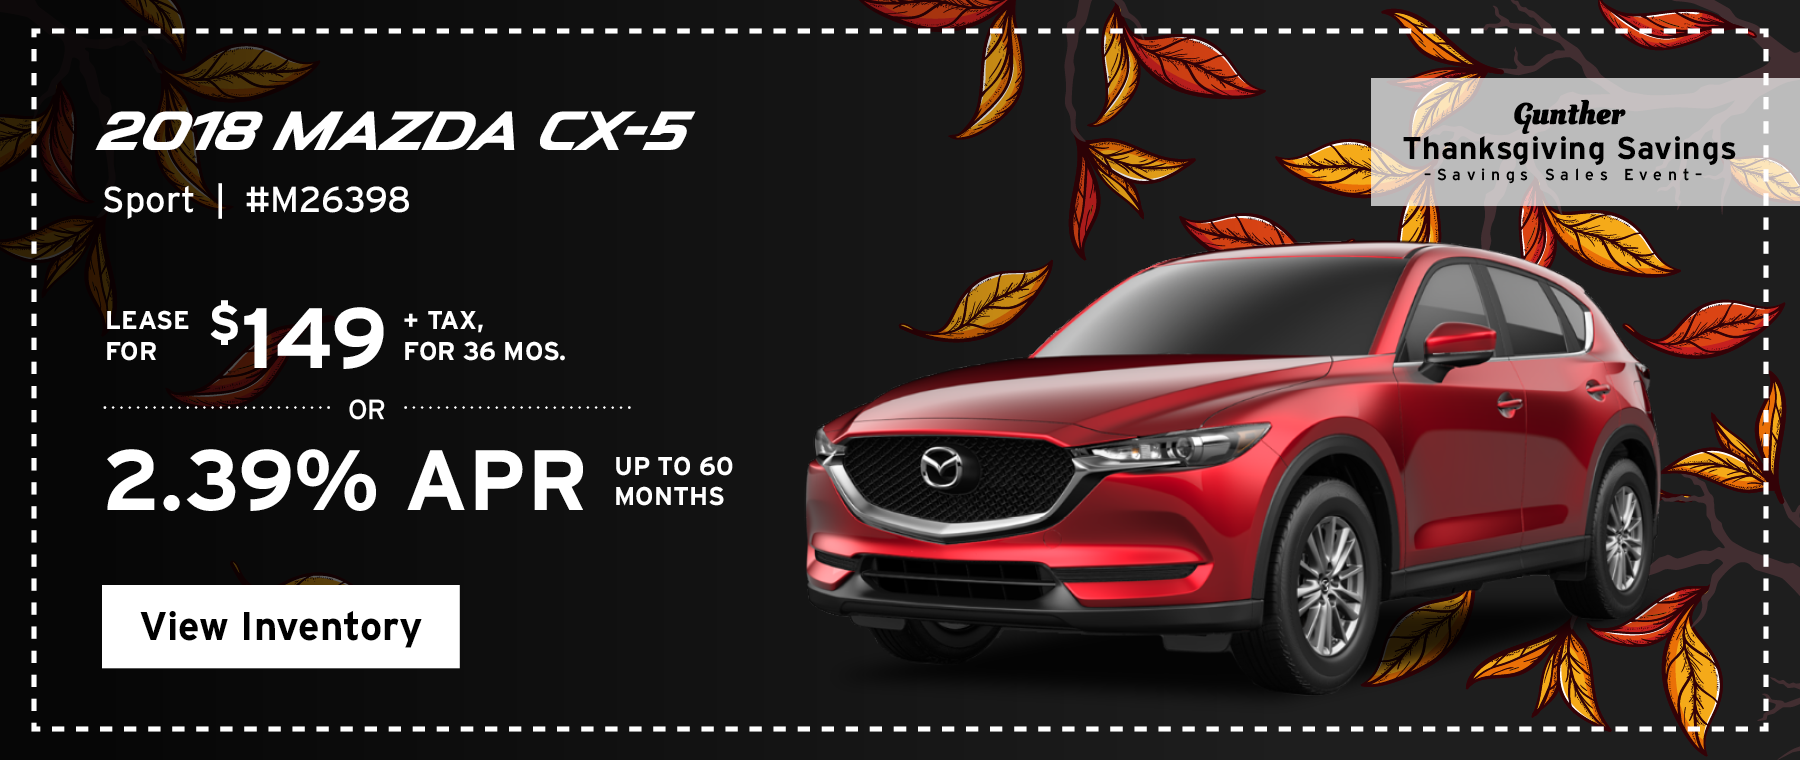 Lease the 2018 Mazda CX-5 Sport for $149, plus tax for 36 months, or 2.39% APR up to 60 months.